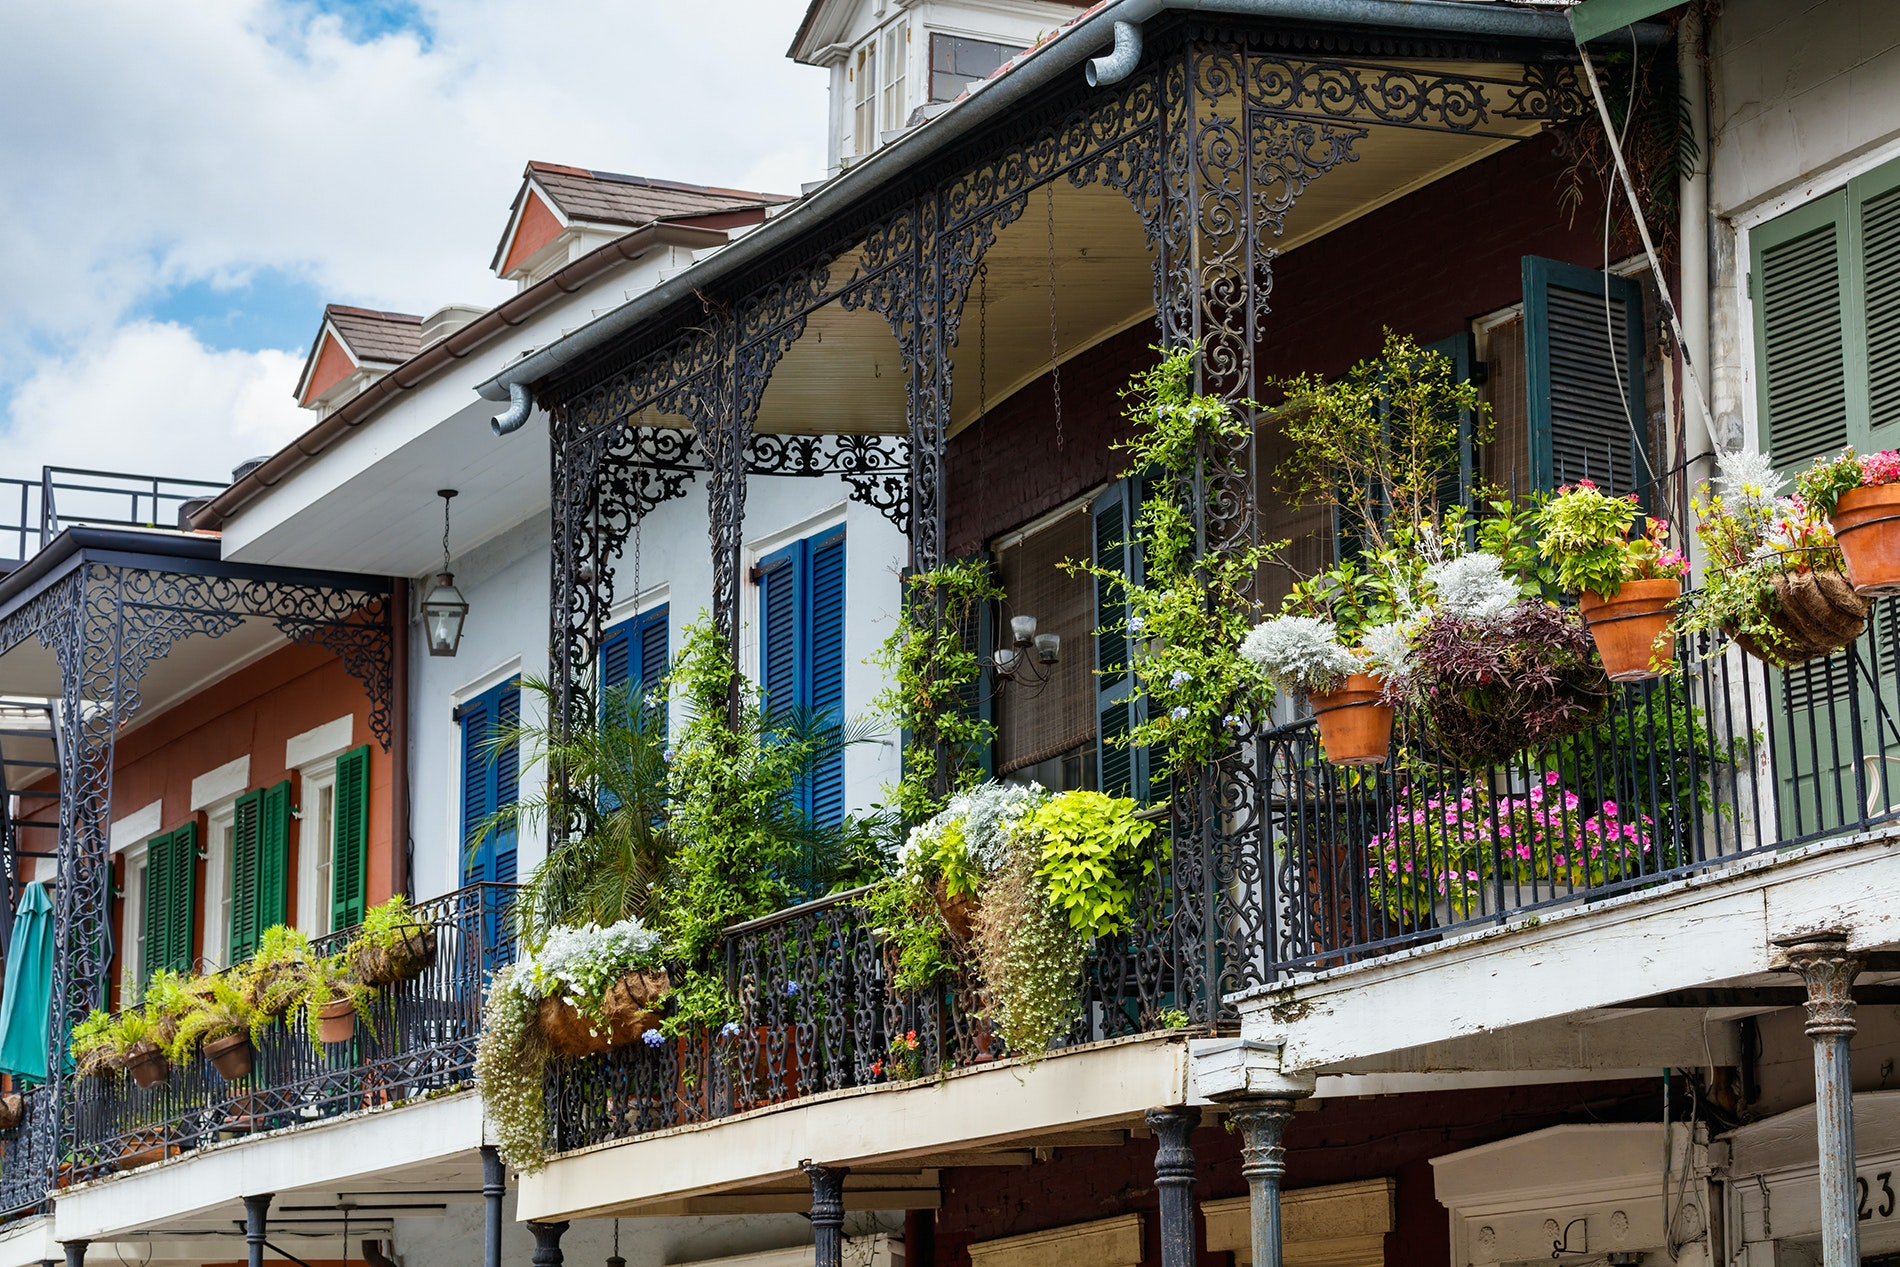 """There are many theories as to why New Orleans gained the nicknamed """"The Big Easy,"""" one showcasing the easy-going nature and vibrant music and nightlife that the city offers."""